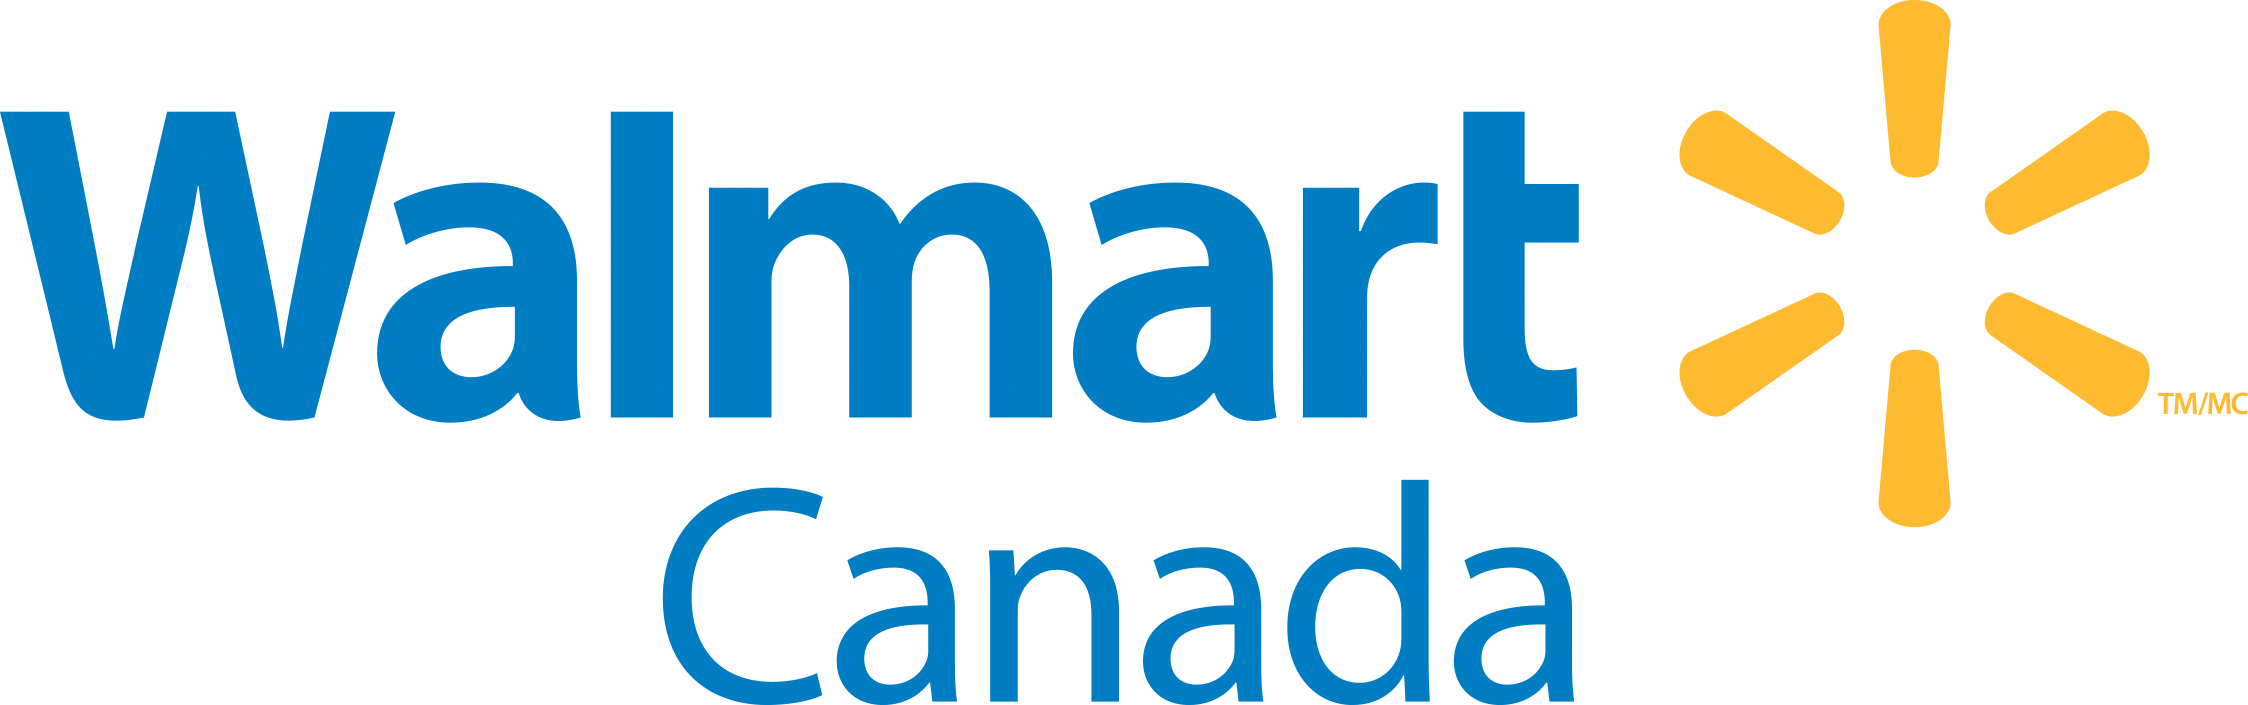 Walmart canada return policy over 90 days